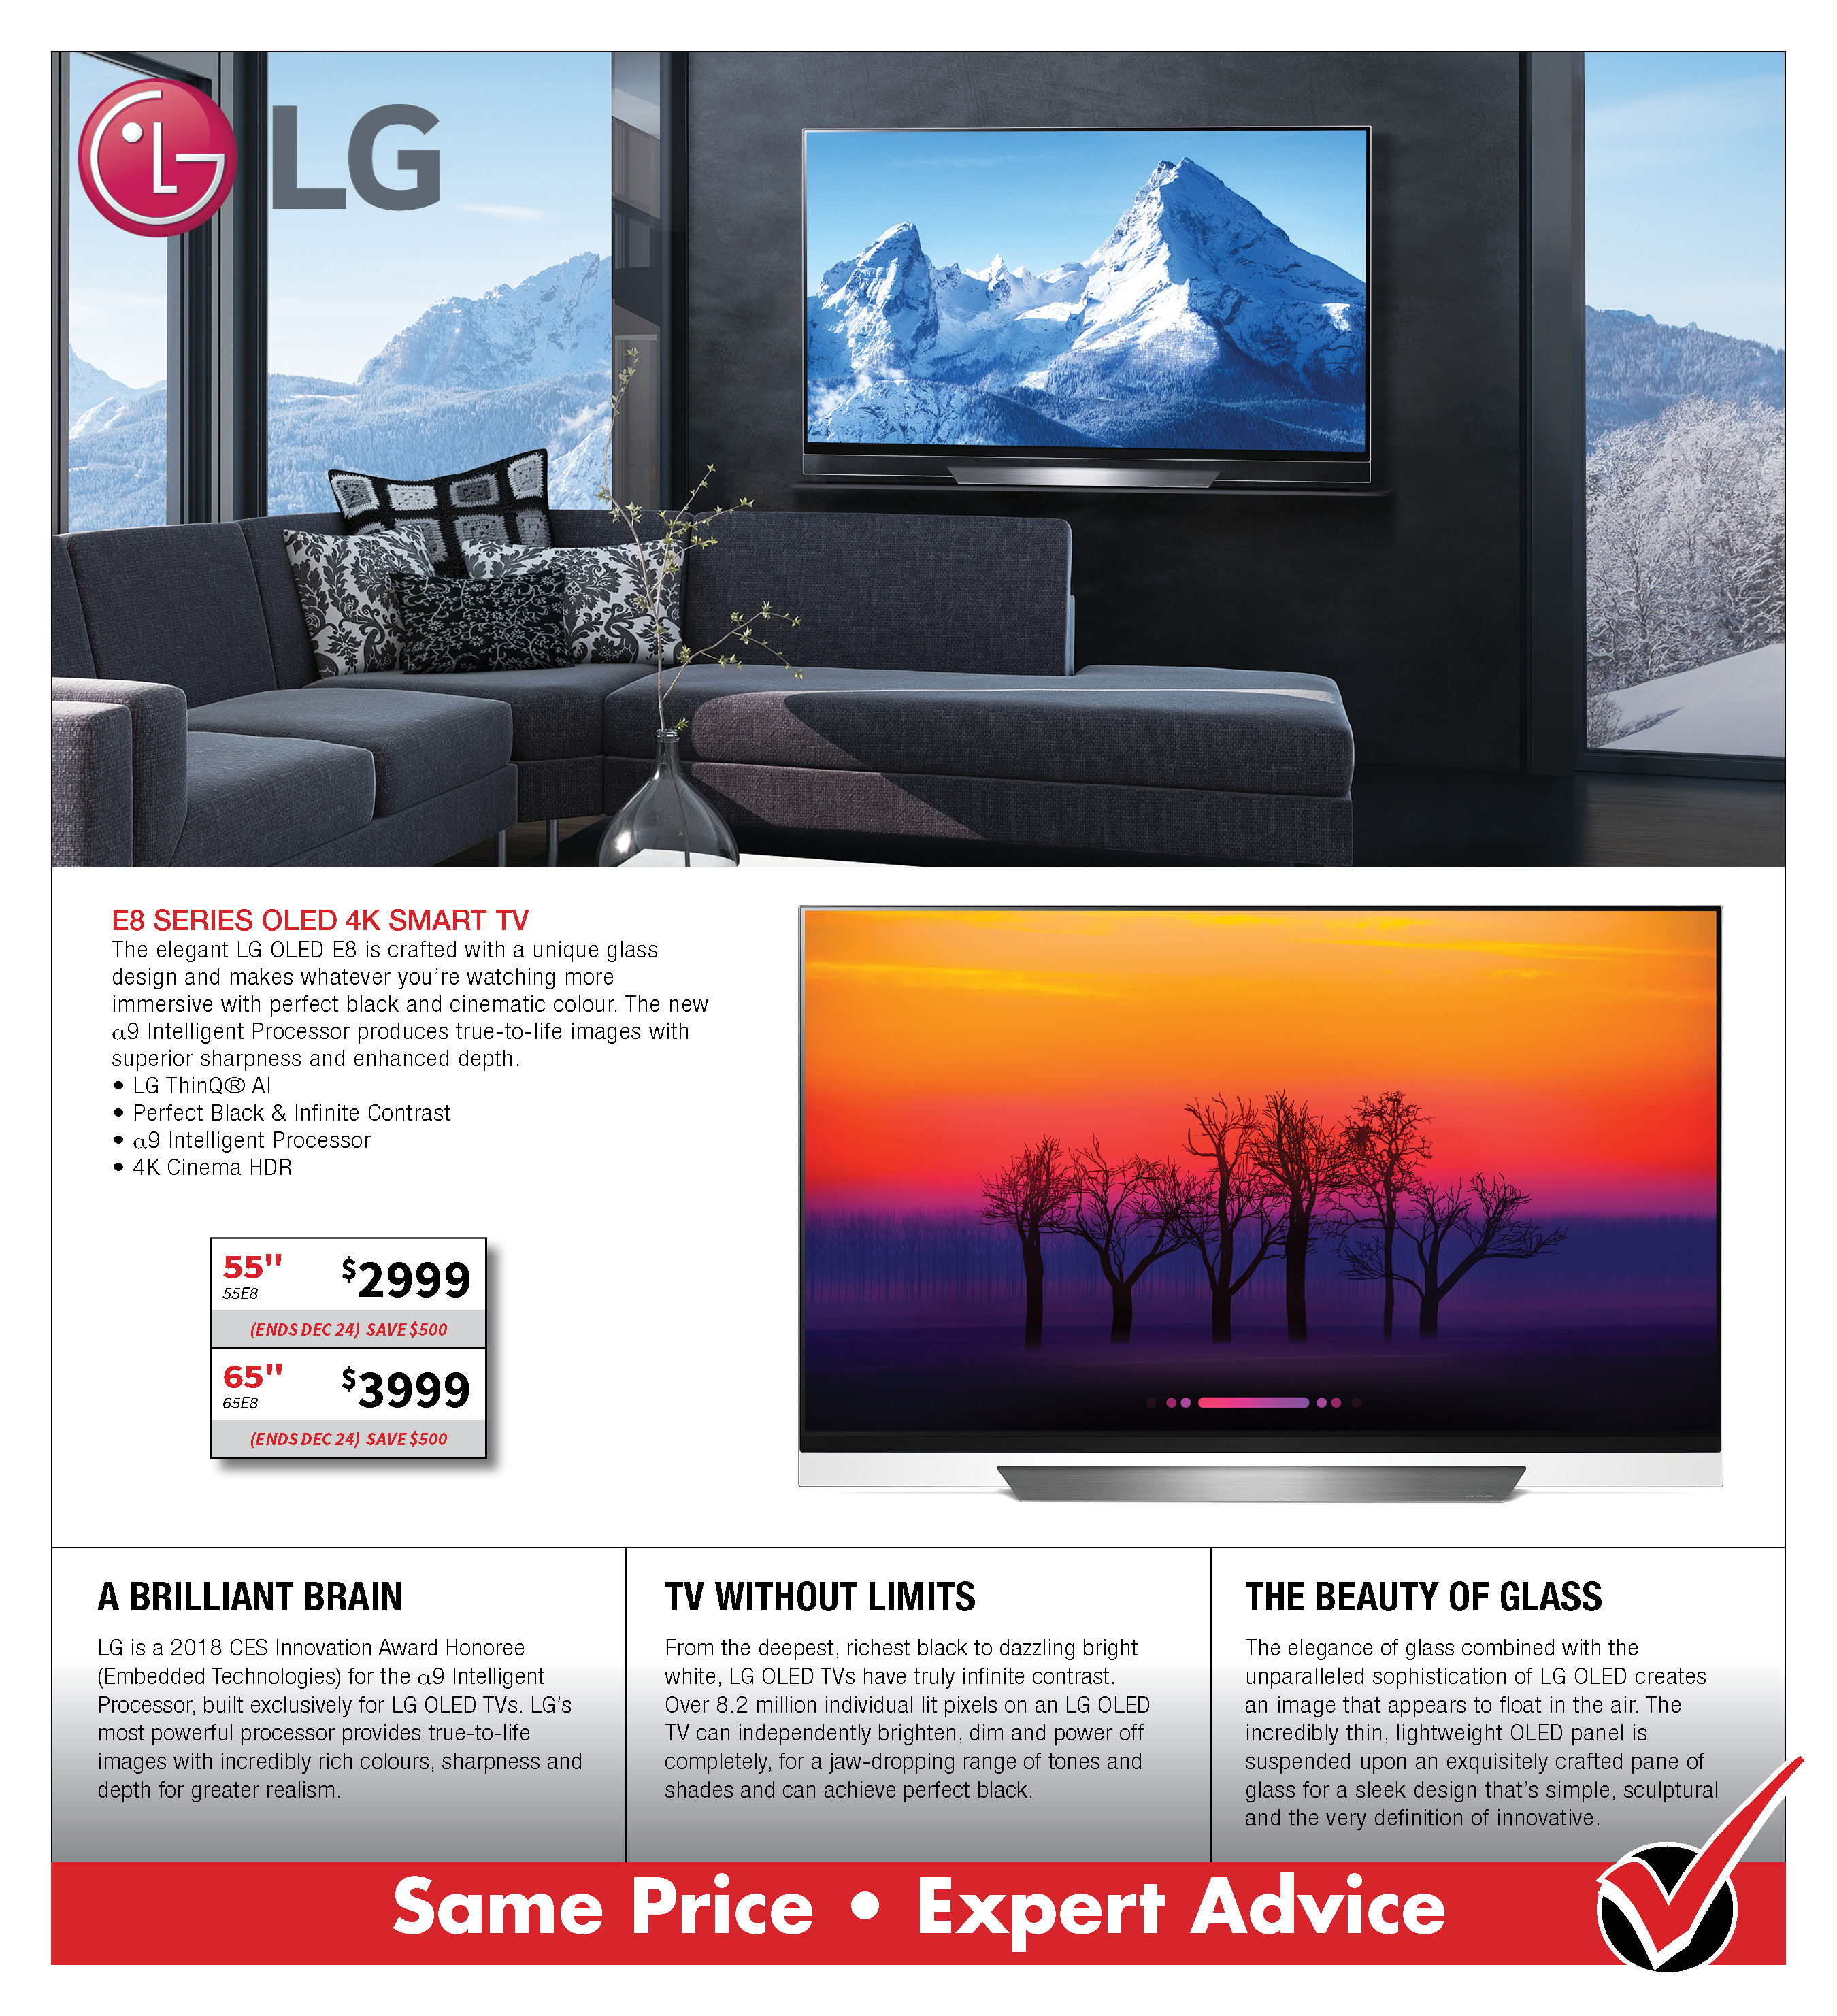 LG E8 OLed 4K Smart TV